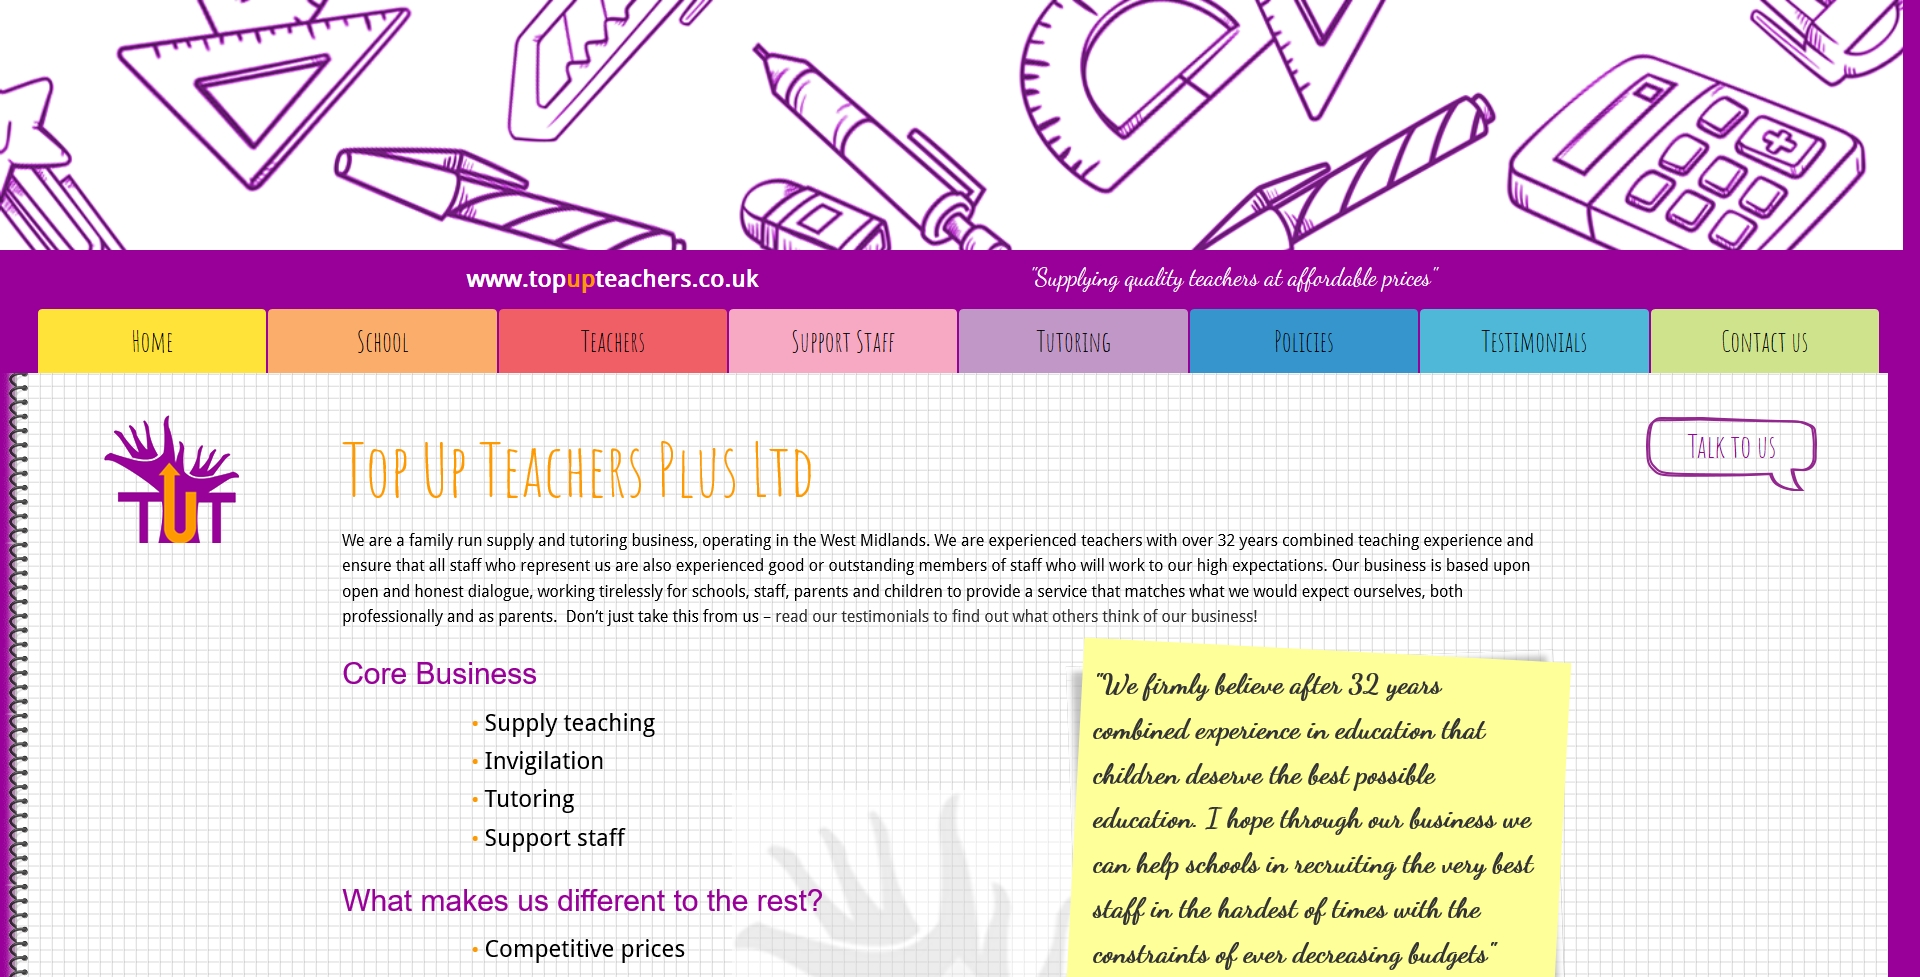 topupteachers.co.uk